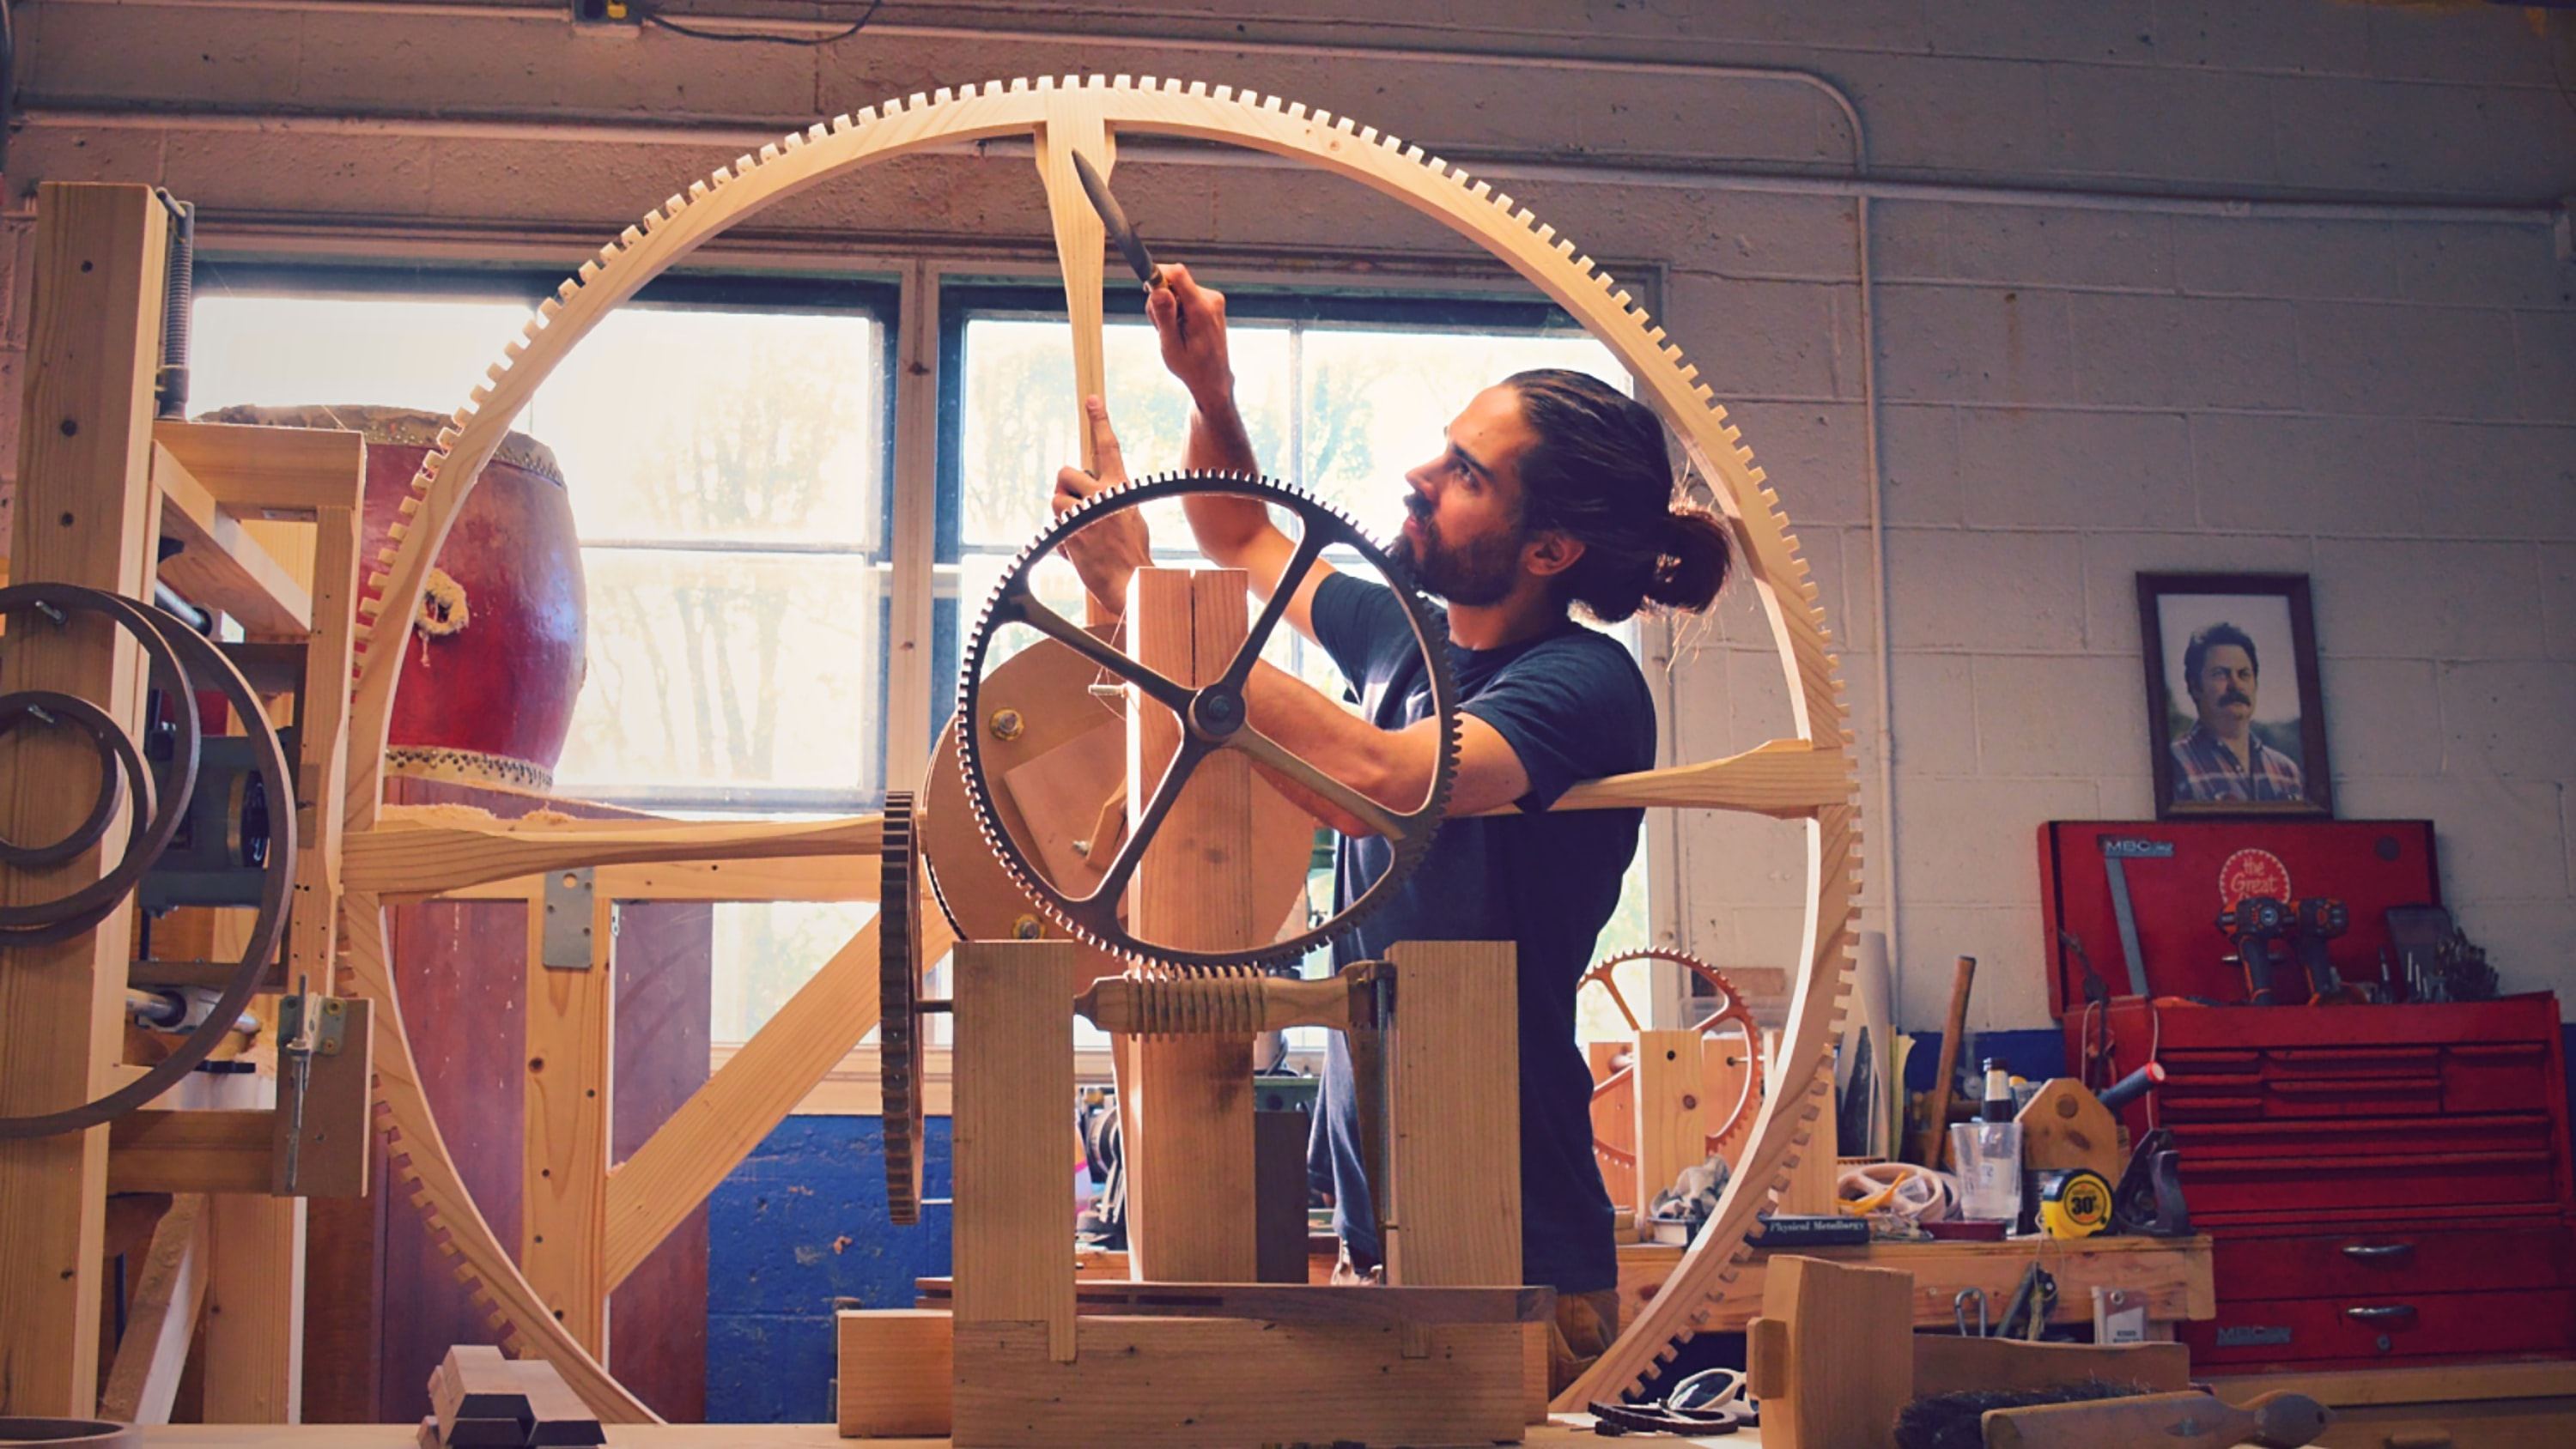 Hero.jpg?ixlib=rails 1.1 introducing: rick hale's incredible large-scale wooden clocks Introducing: Rick Hale's Incredible Large-Scale Wooden Clocks hero